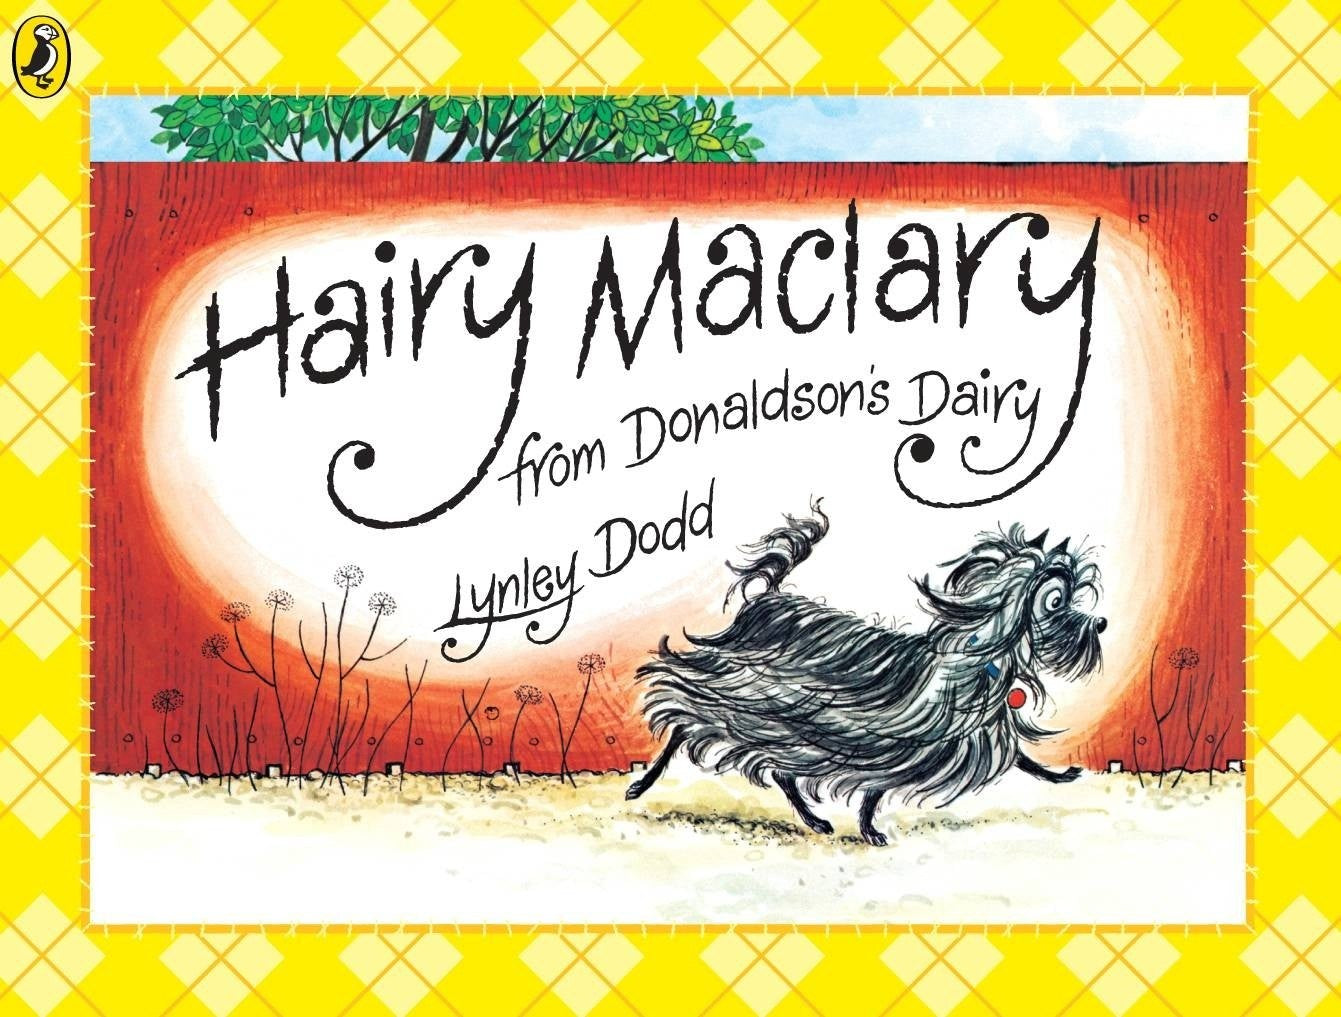 Hairy Maclary from Donaldson's Dairy by Lynley Dodd.